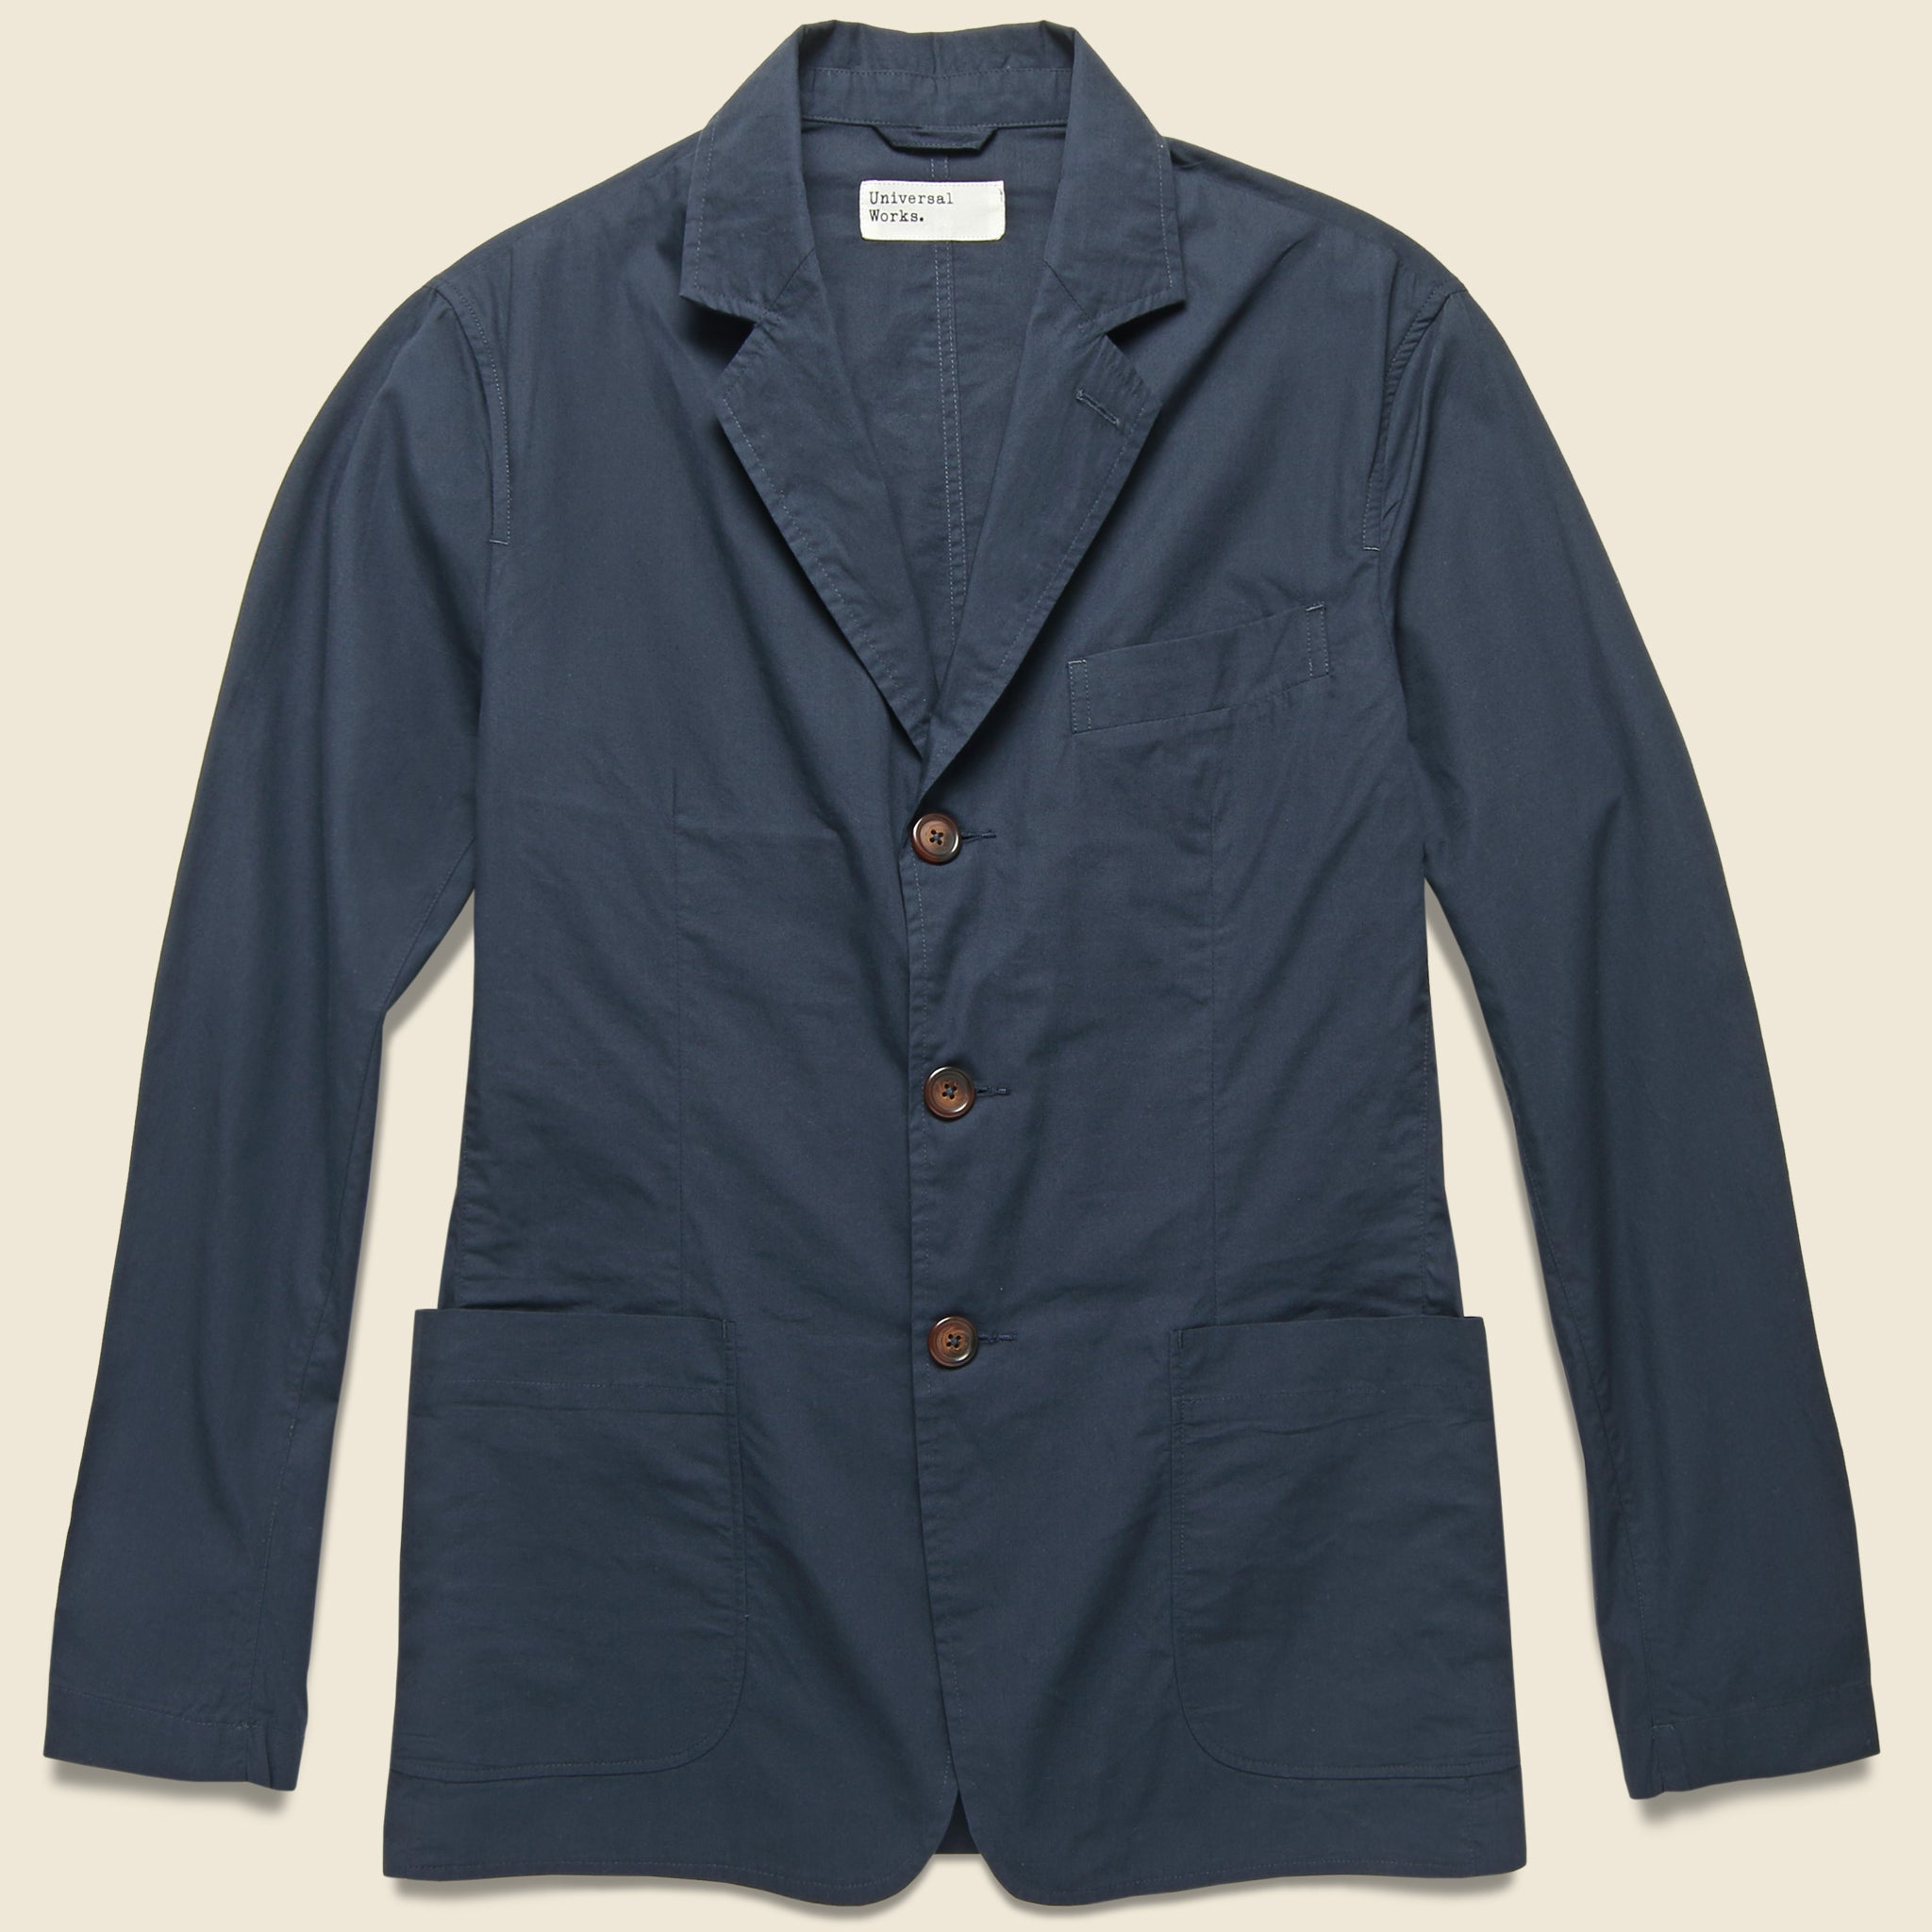 711b13c70e London Poplin Jacket - Navy